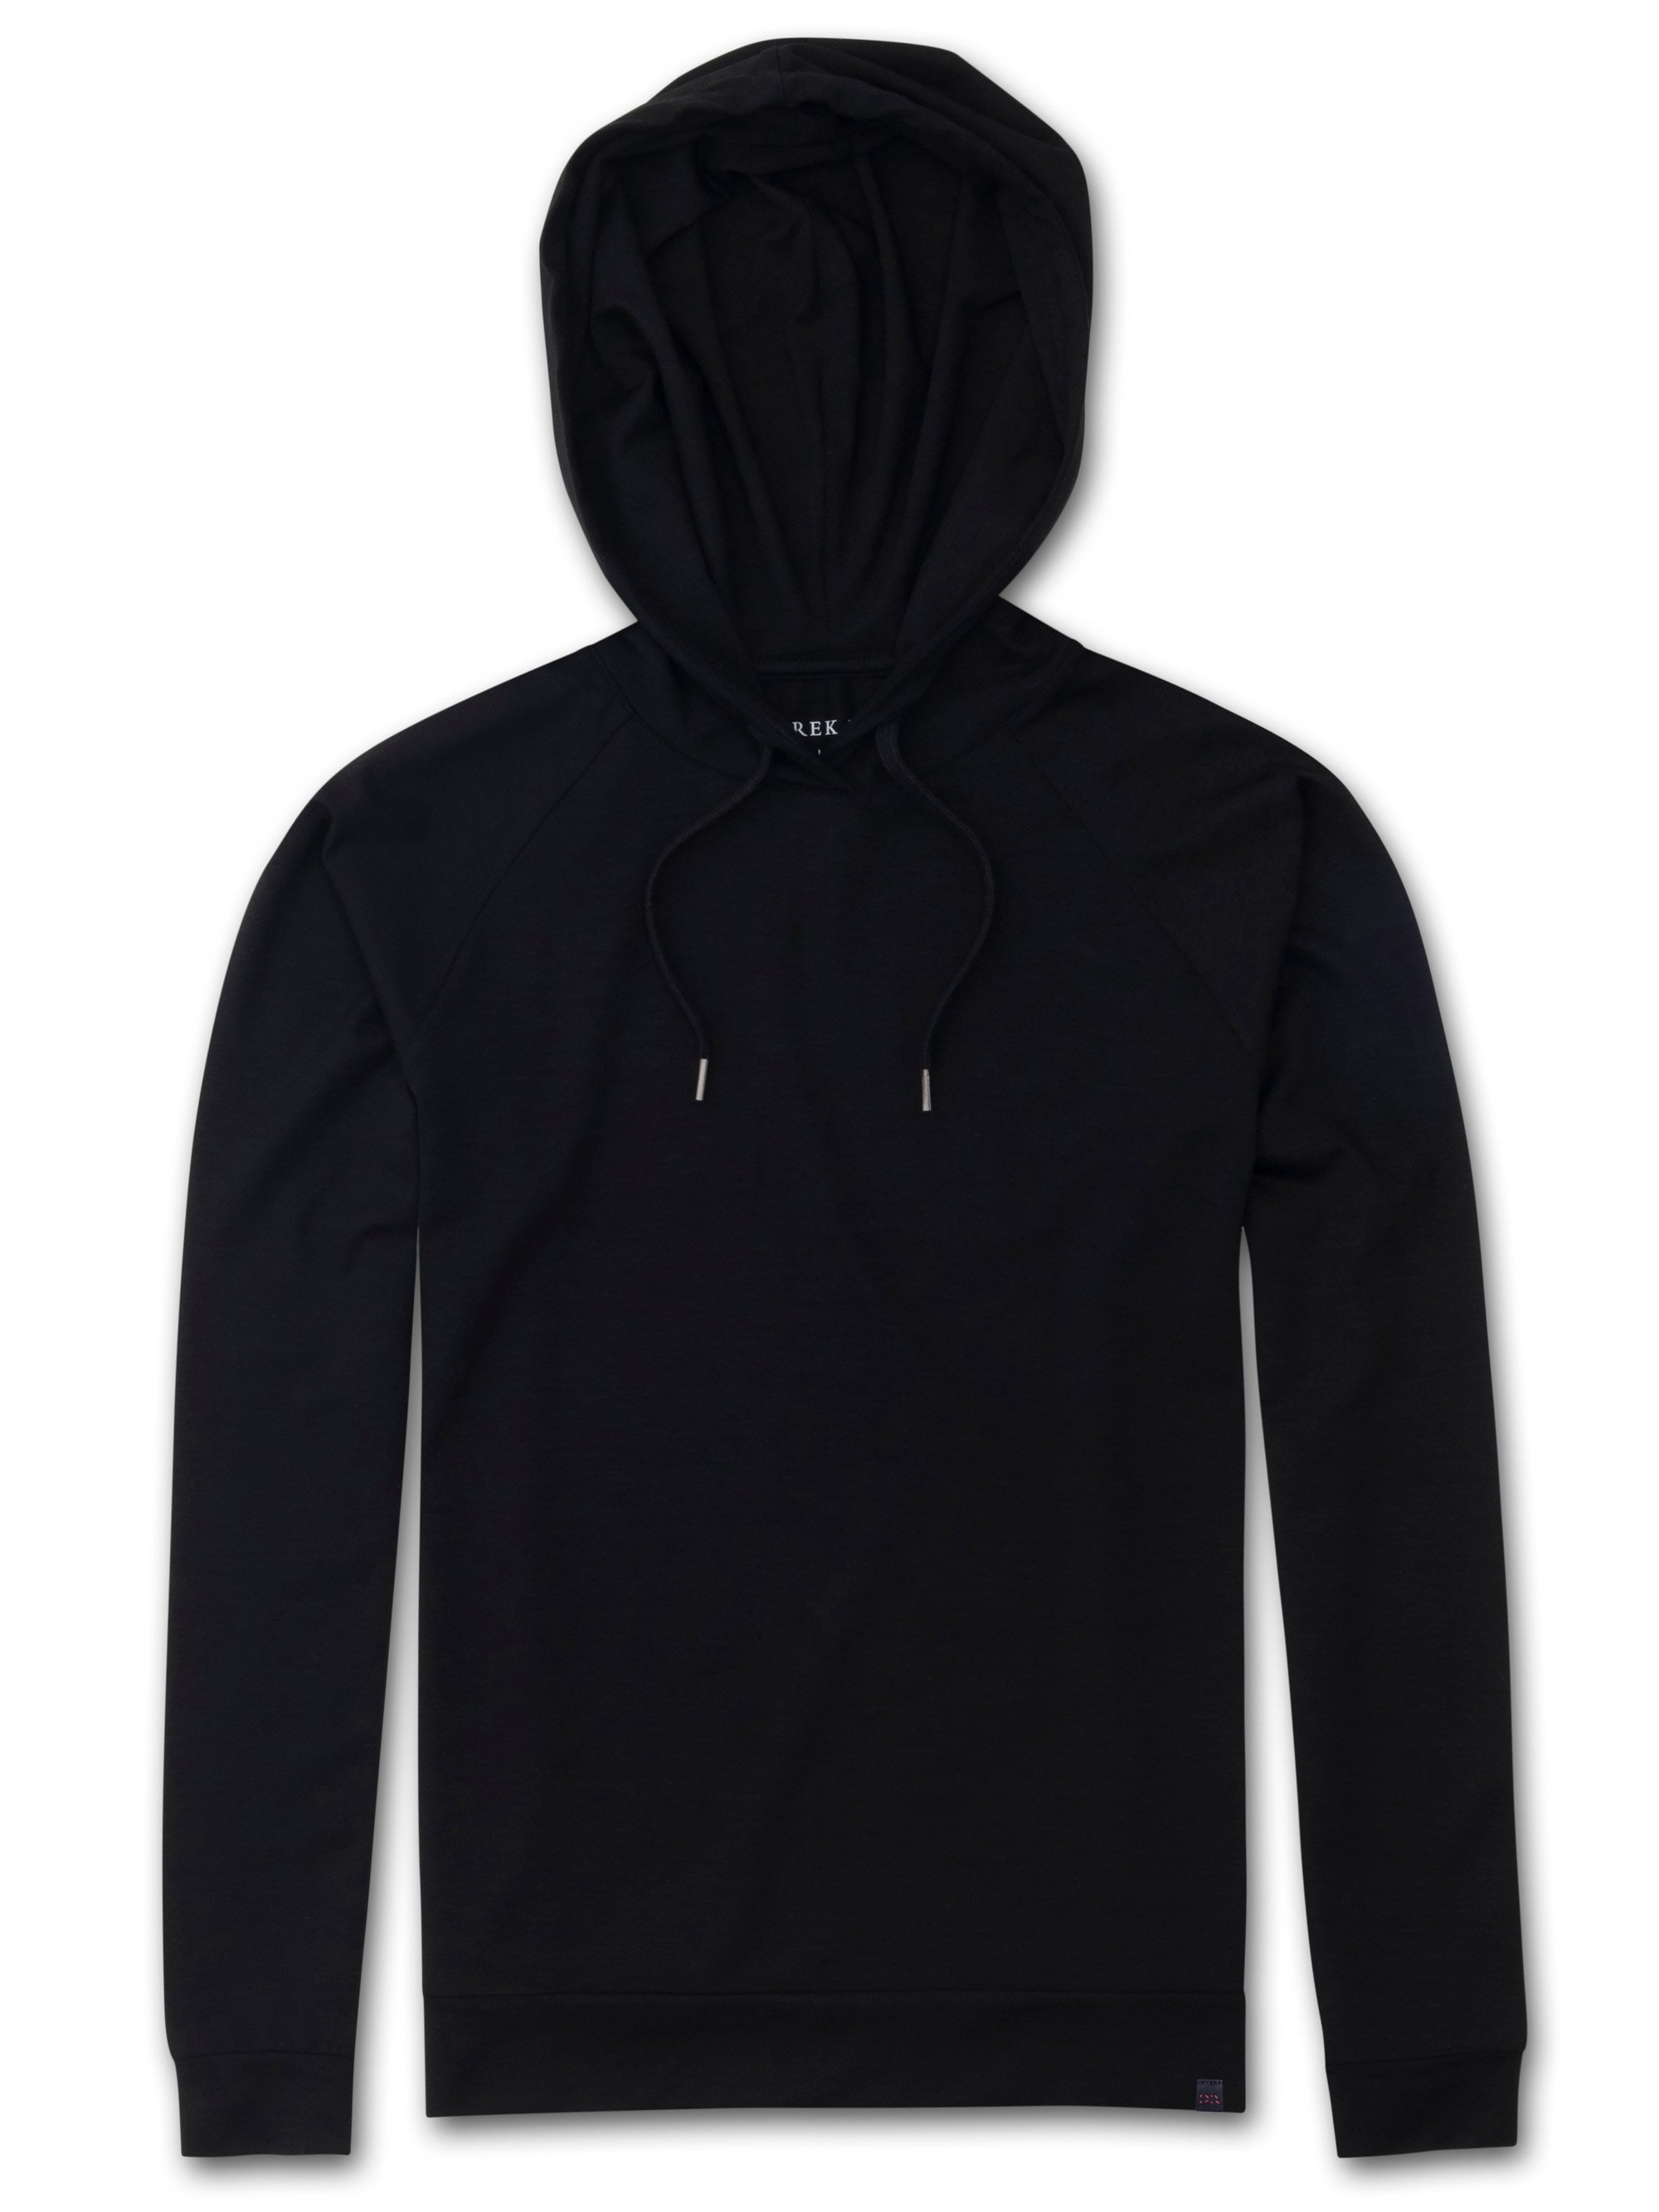 Women's Jersey Pullover Hoodie Basel Micro Modal Stretch Black